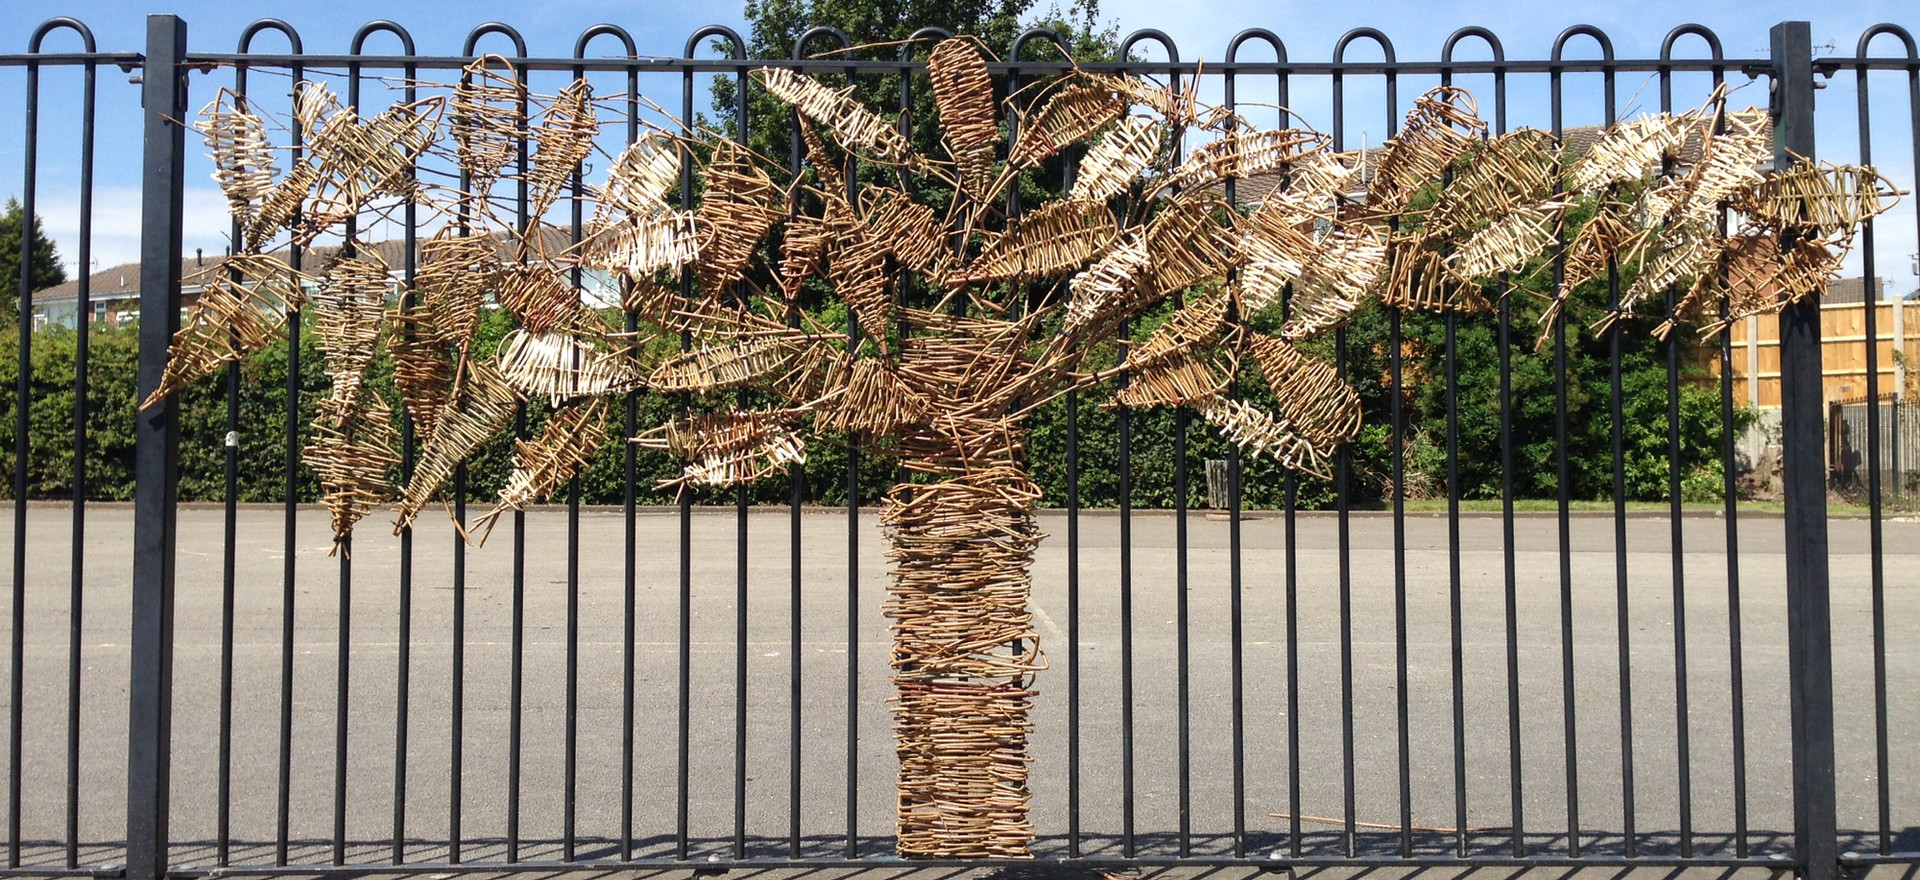 Willow Tree created by Year 6 at Camp Hill Primary School in Corby